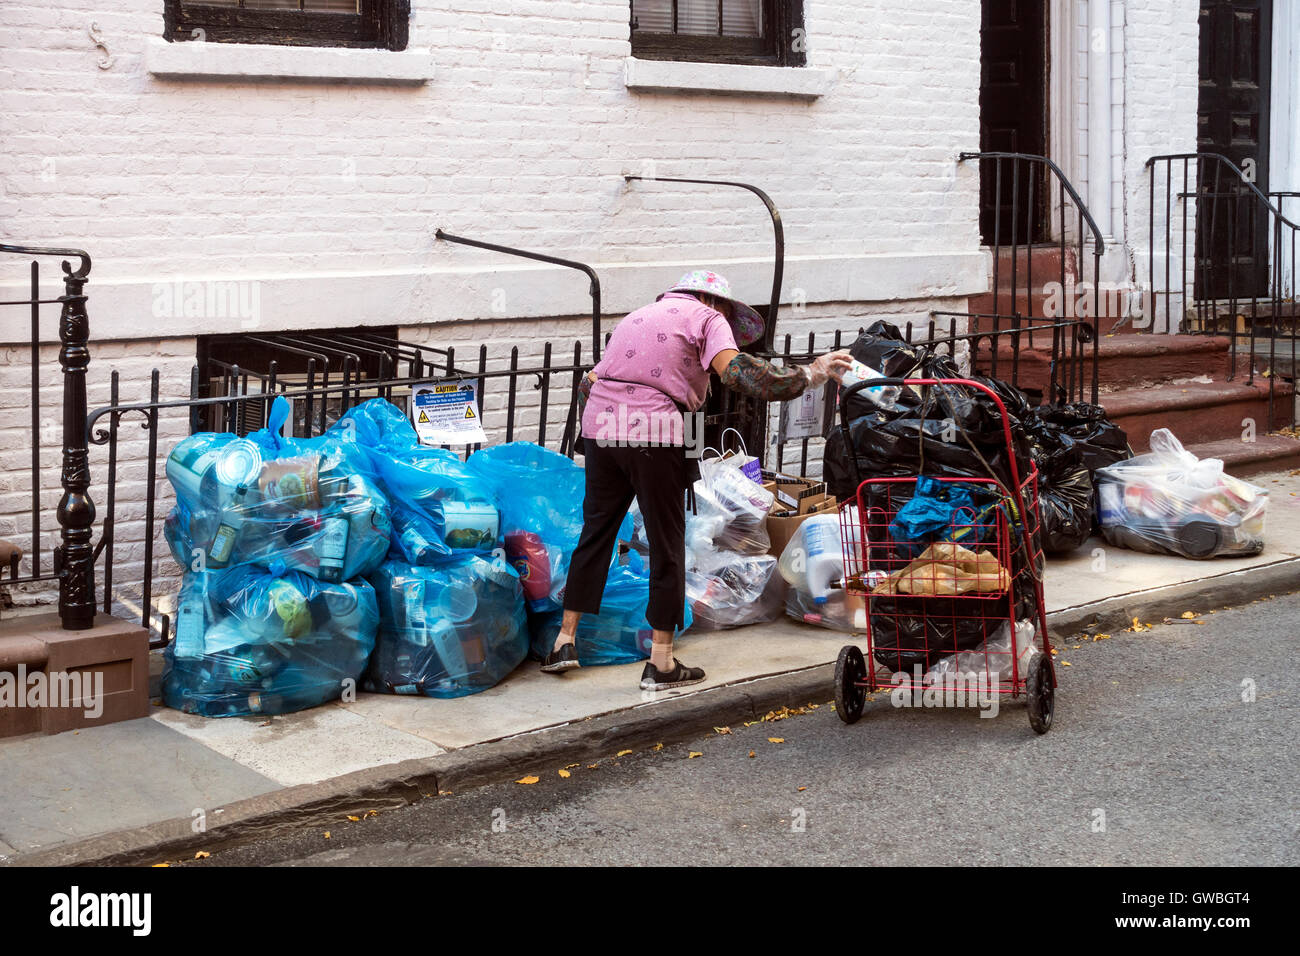 Older Asian woman picks bottles and cans from trash in order to collect deposits - Stock Image